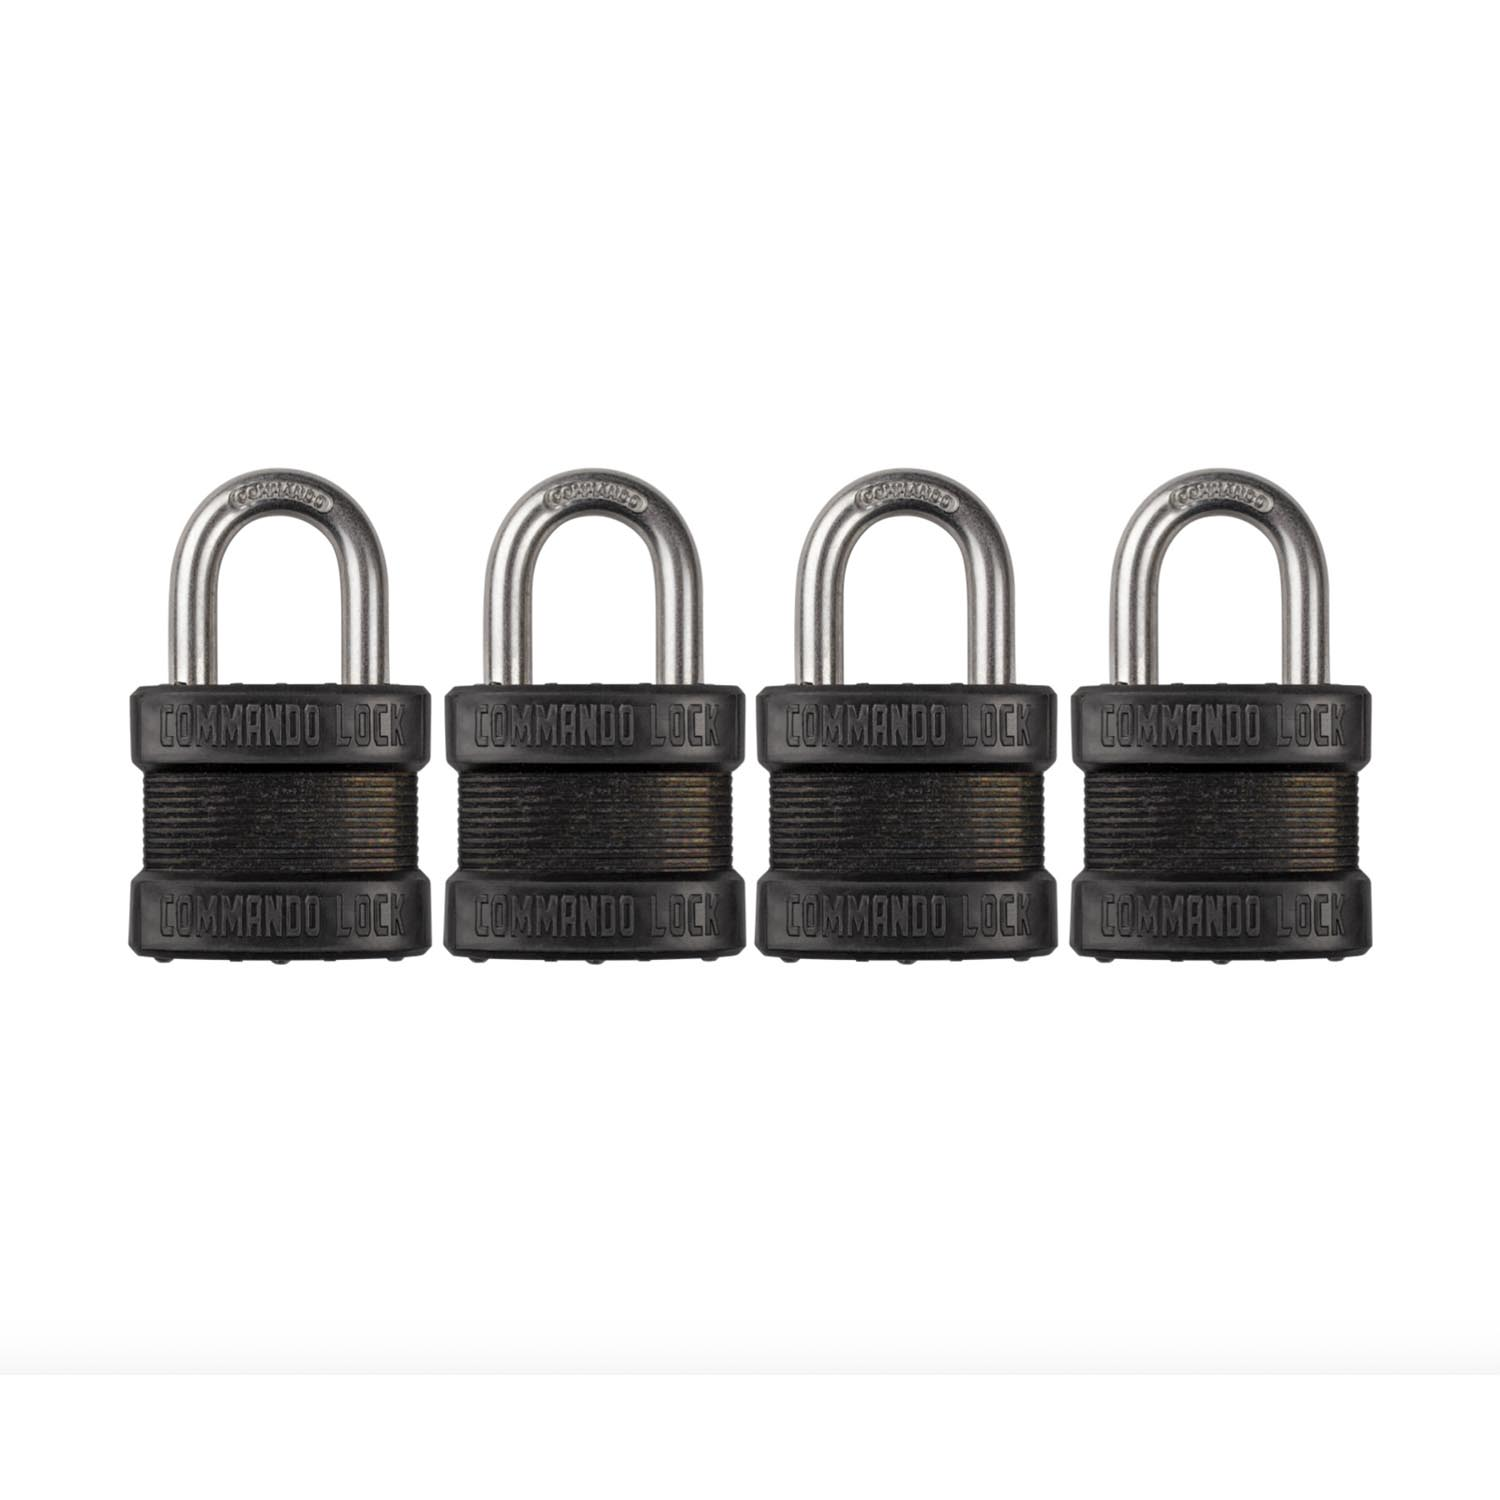 "Commando Lock Steel Laminated ""Black Out"" Padlock (4 Pack)"